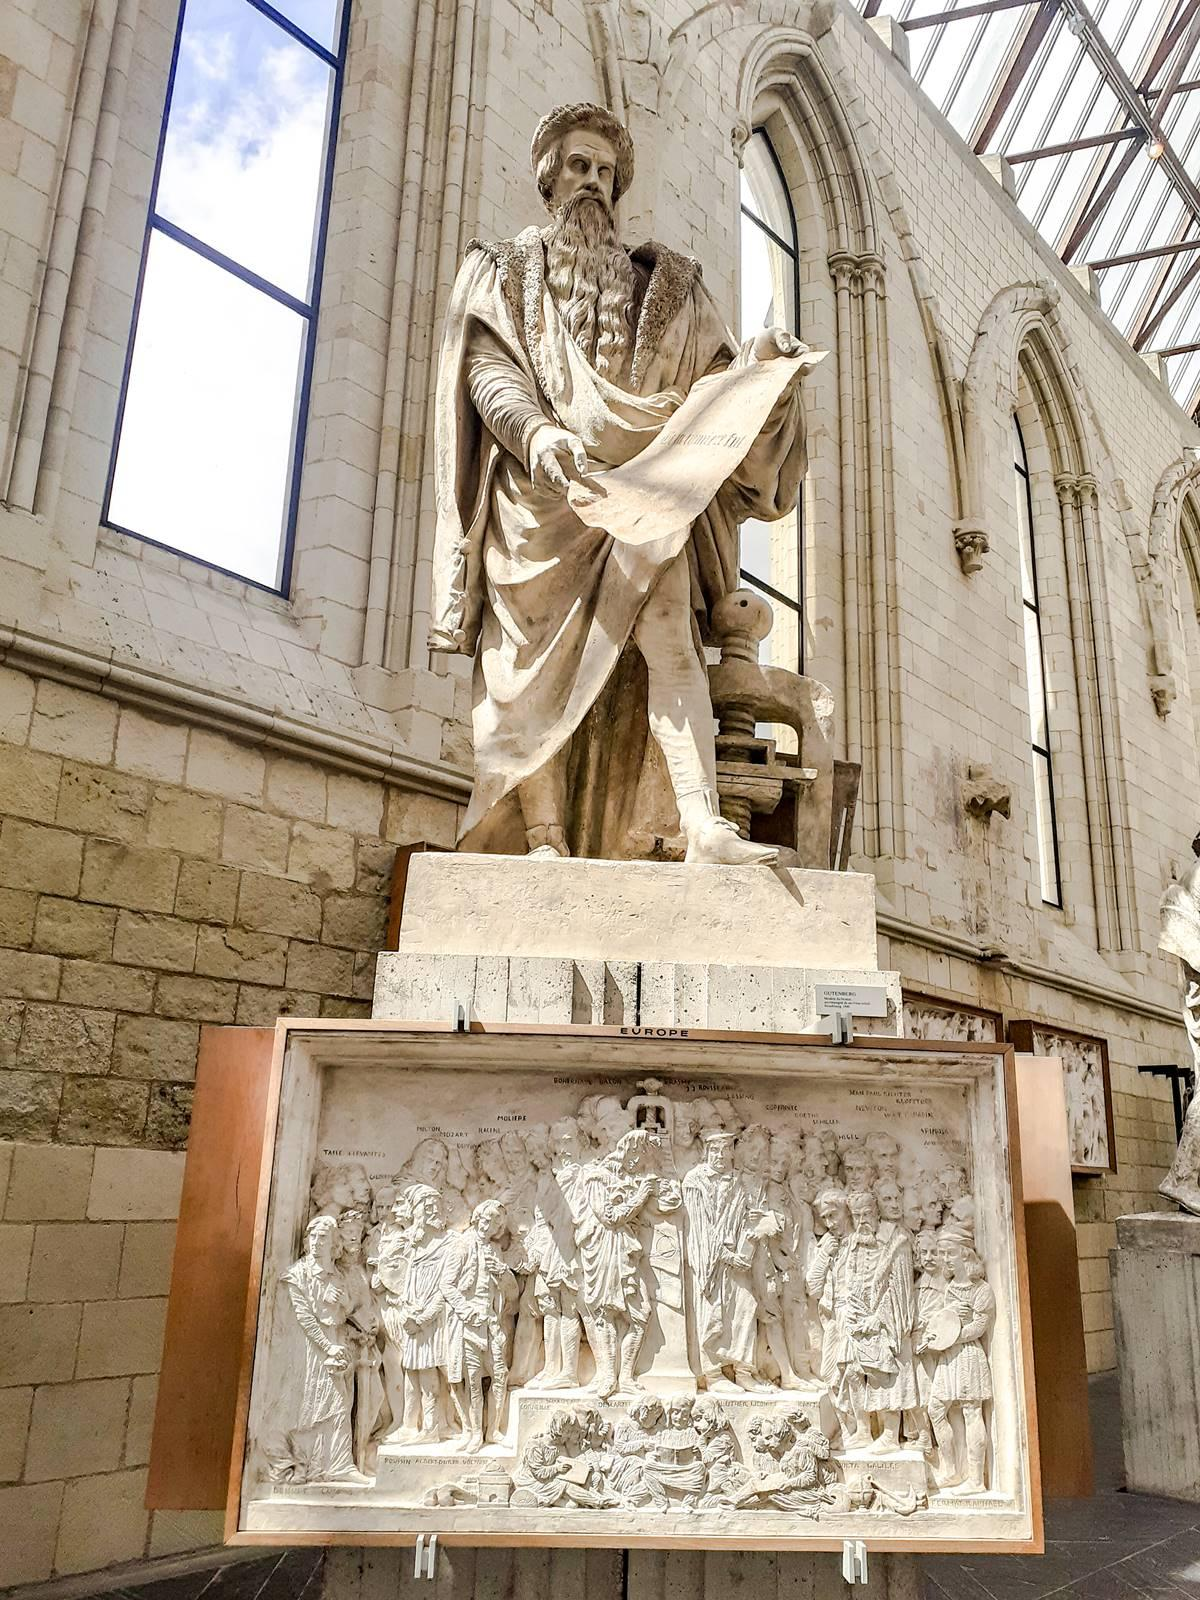 On a visite le musee david d angers a angerspsx 20210724 182844